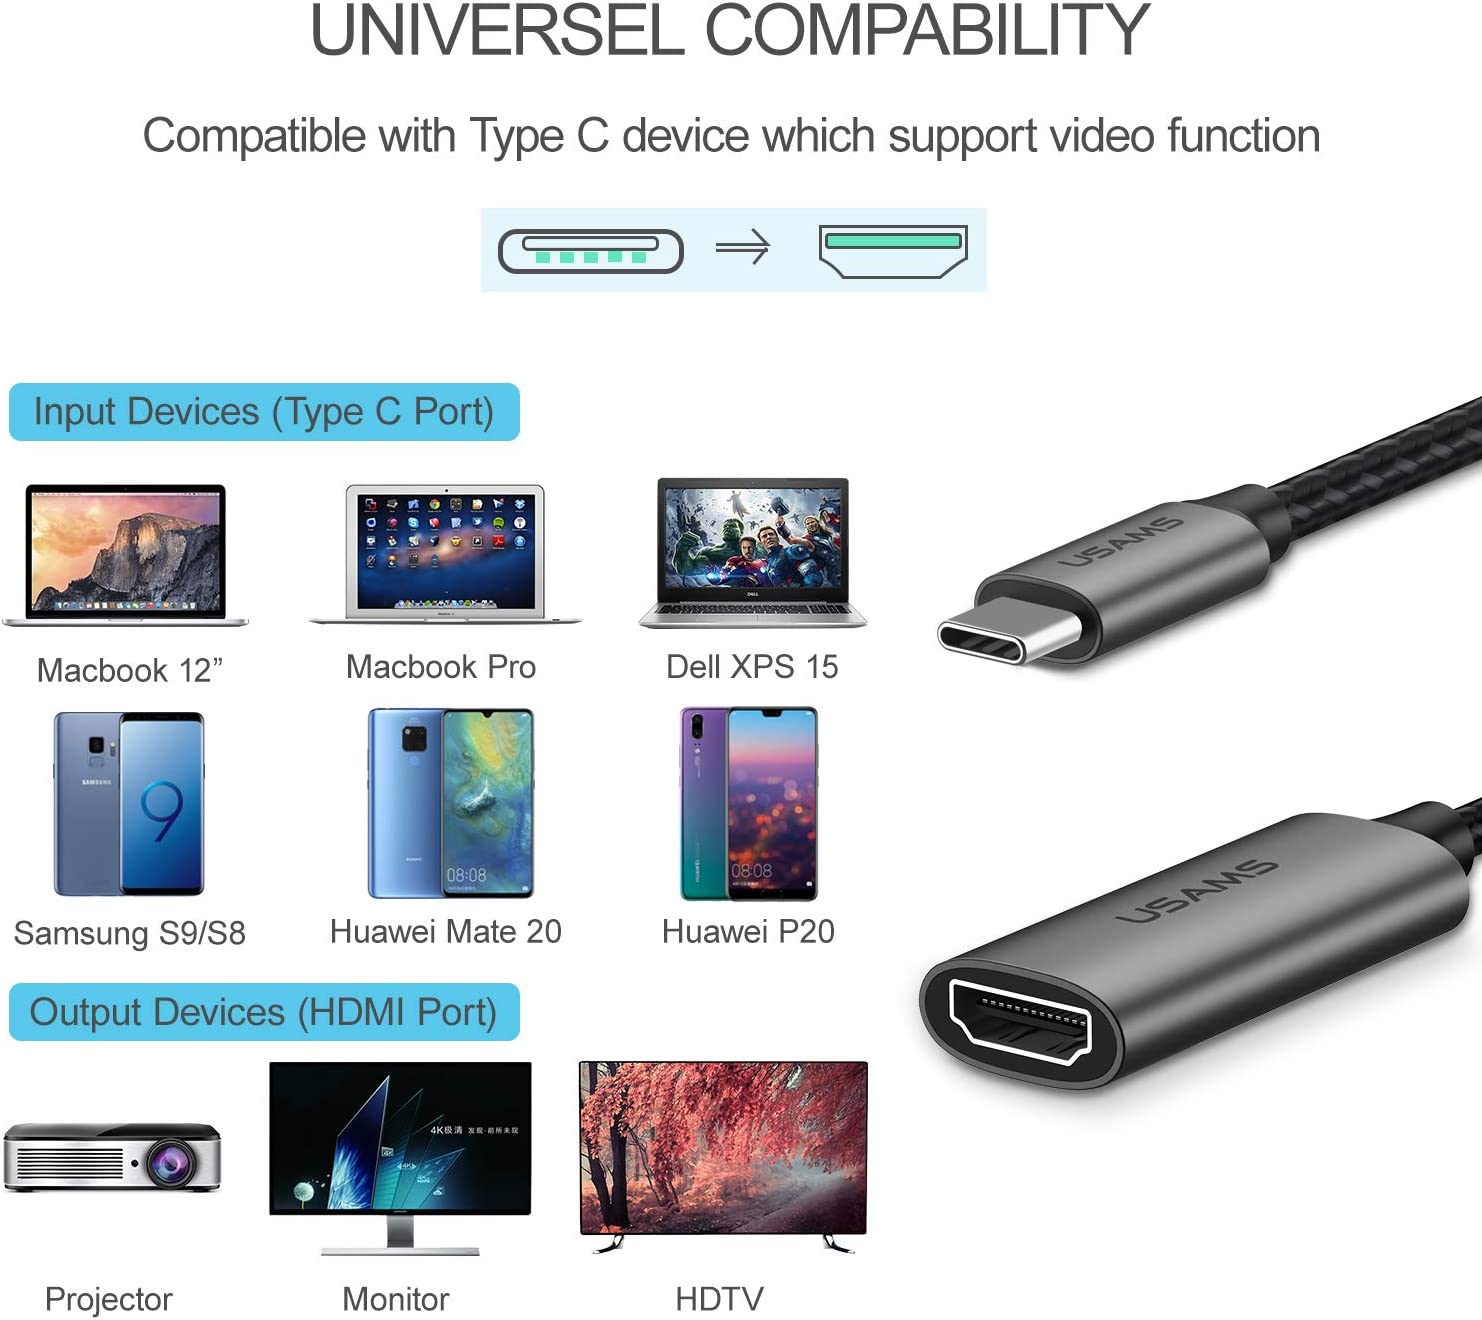 ,USB Type-C to HDMI Adapter Samsung Galaxy S10//S9,Surface Book 2-6FT Black USAMS USB C to HDMI Cable 4K@60Hz Thunderbolt 3 Compatible for MacBook Pro 2018//2017,MacBook Air//iPad Pro 2018